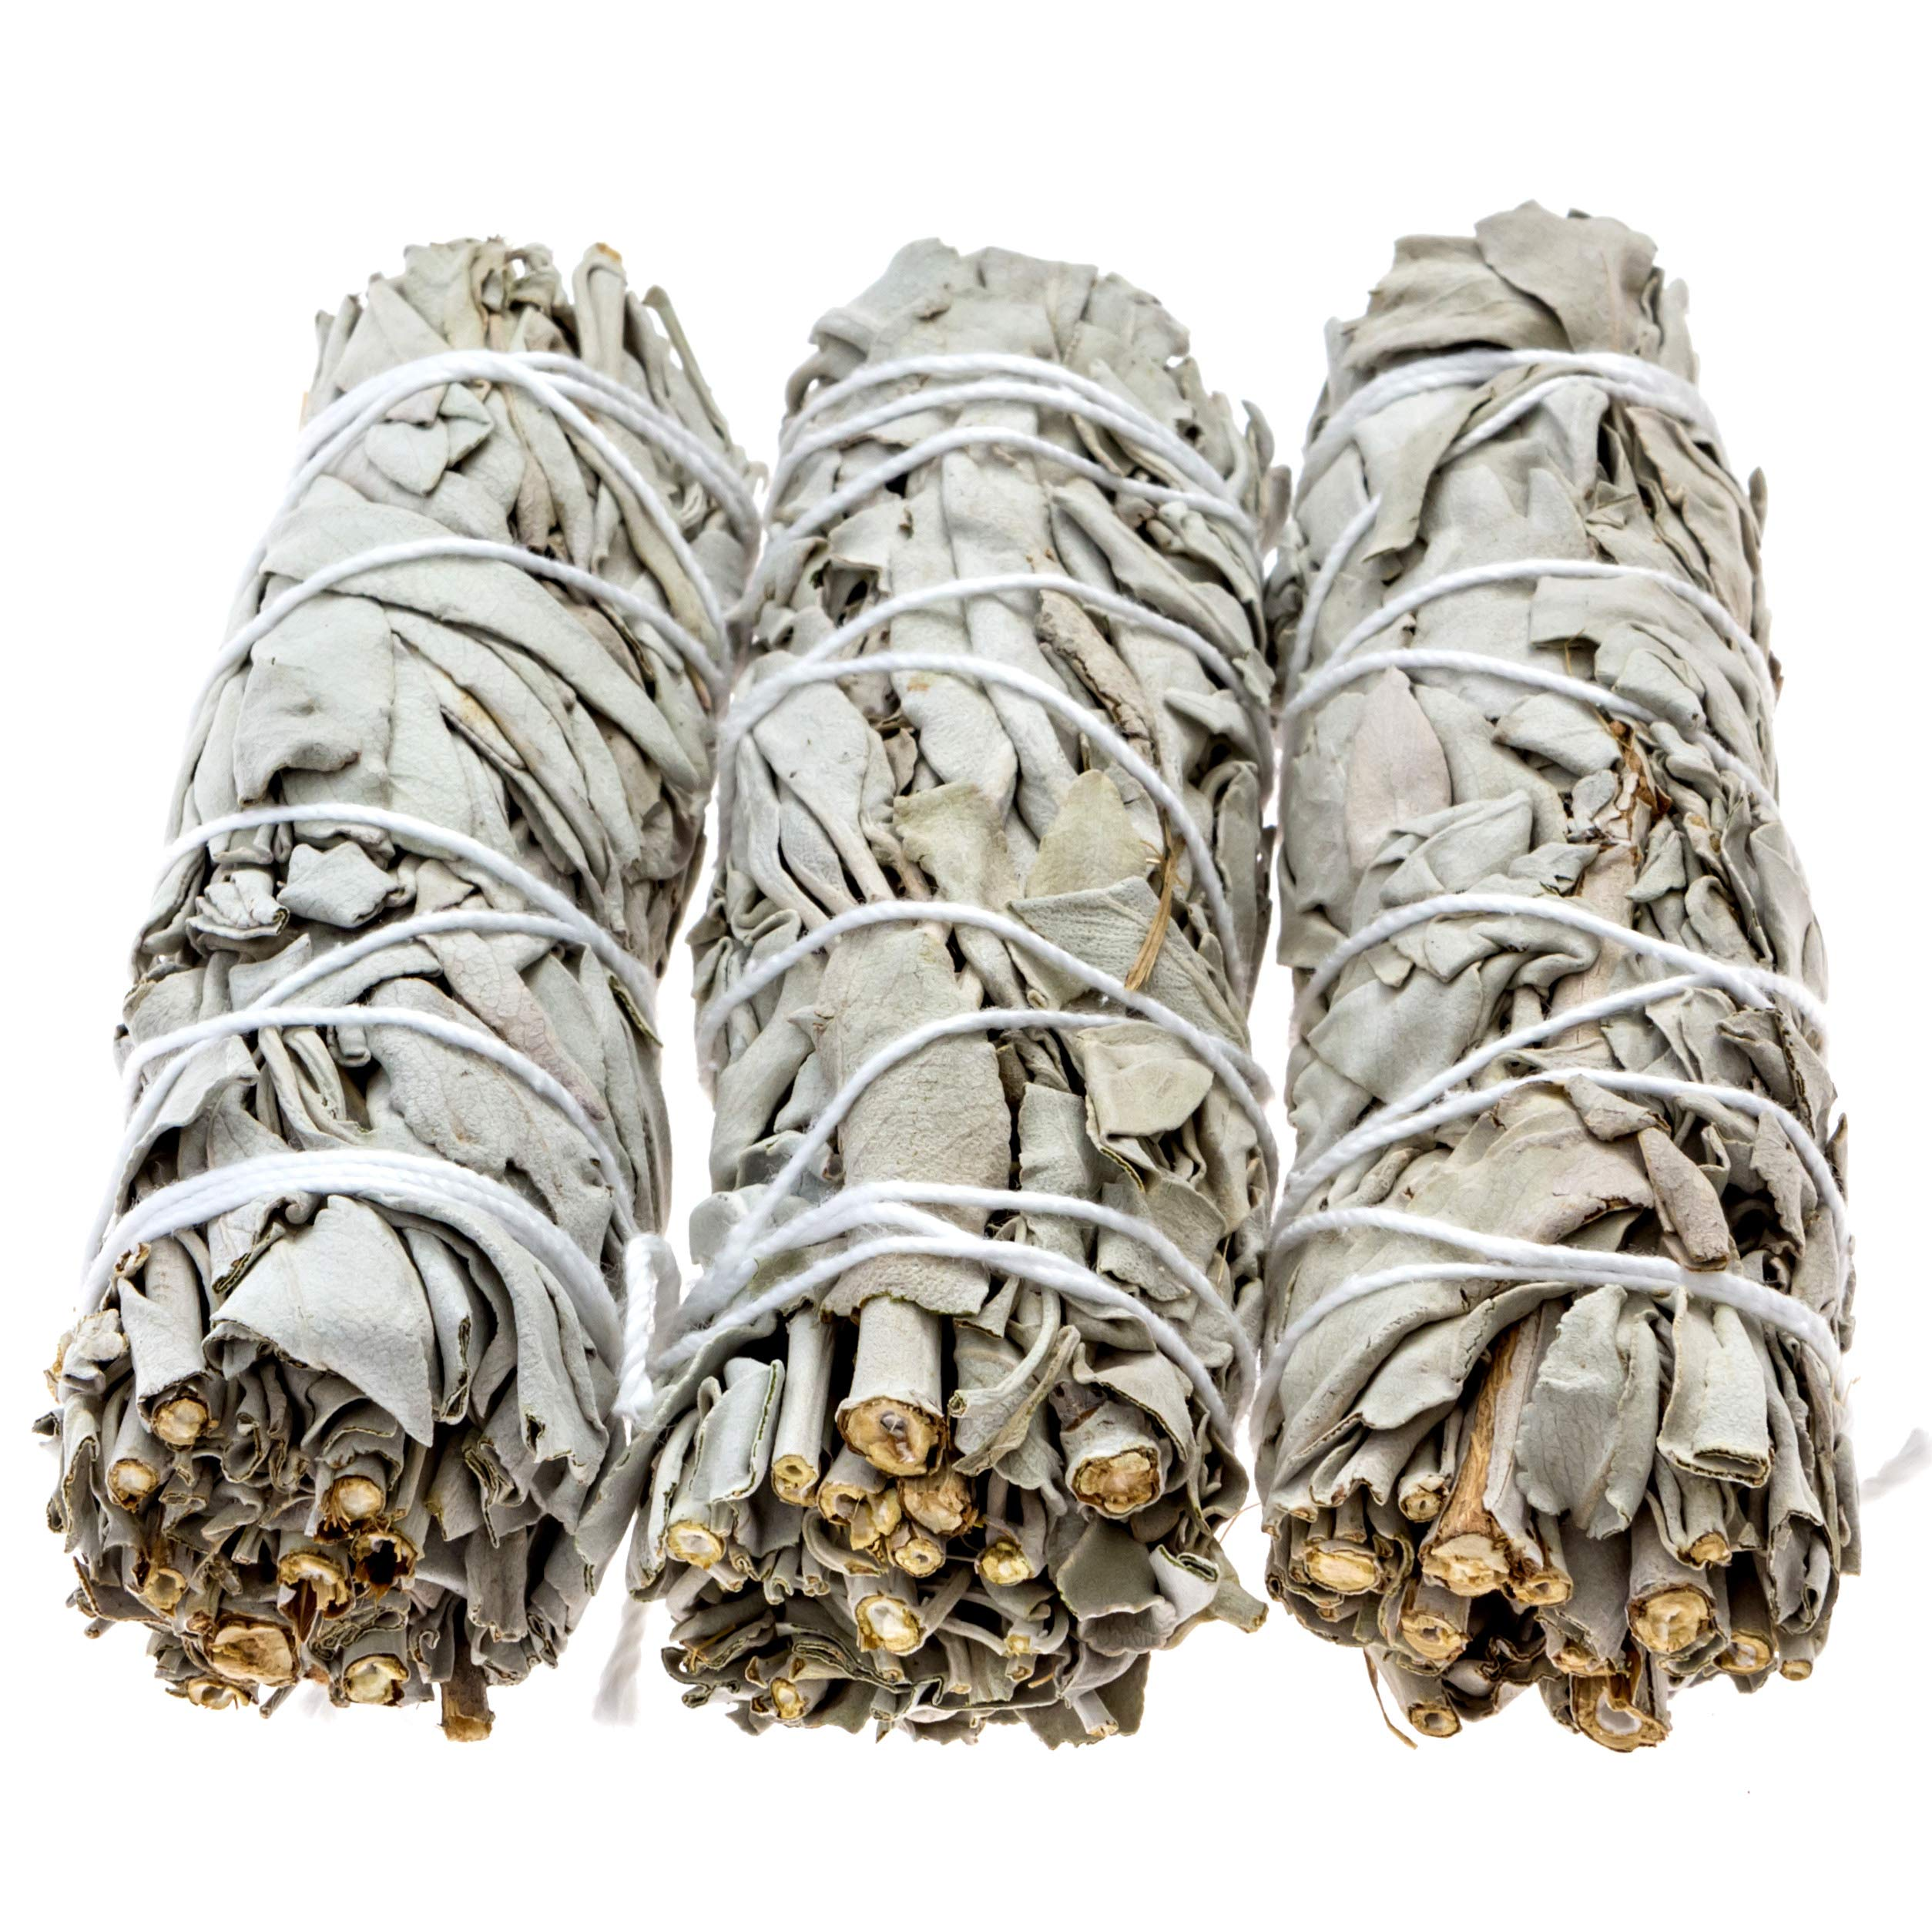 Big Lost Goods 3 Pack, Premium White Sage Smudge Sticks, Mini Bundles 4-5'' Long, Organically Grown in California. Use for: smudging, Energy Cleansing, and Meditation by Big Lost Goods (Image #2)